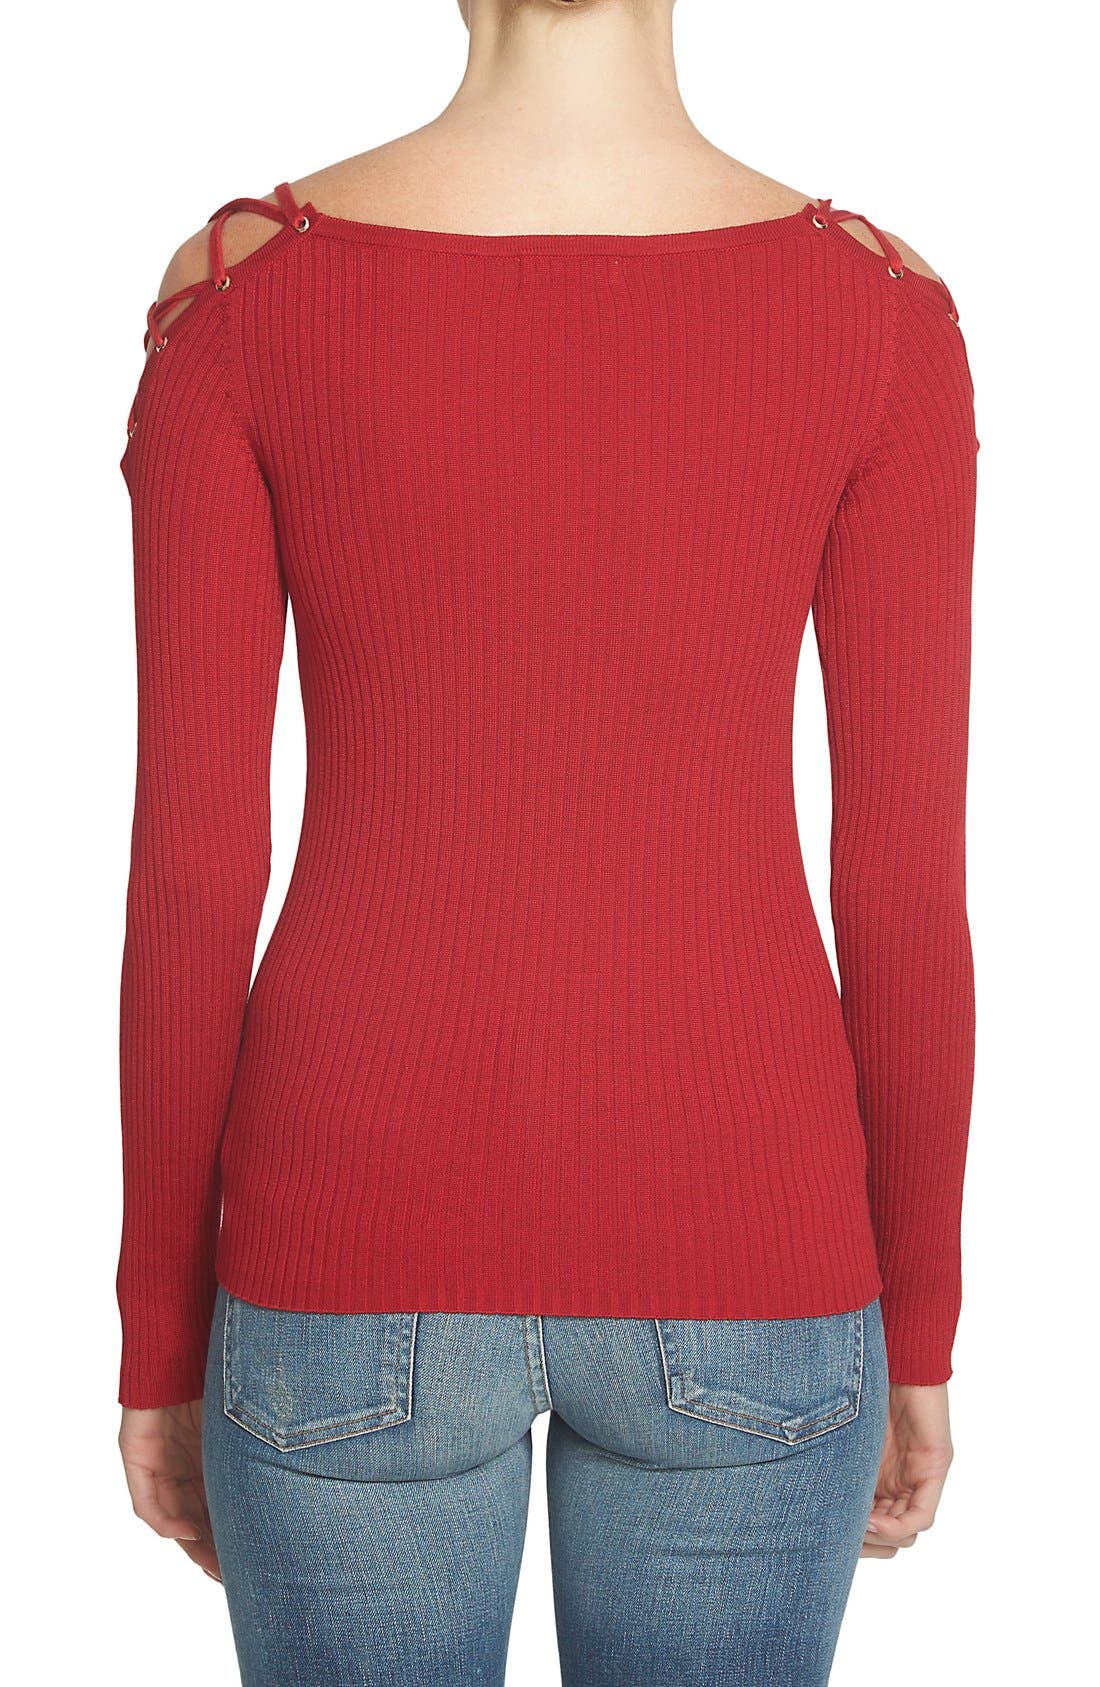 Alternate Image 2  - 1.STATE Lace-Up Shoulder Cotton Sweater